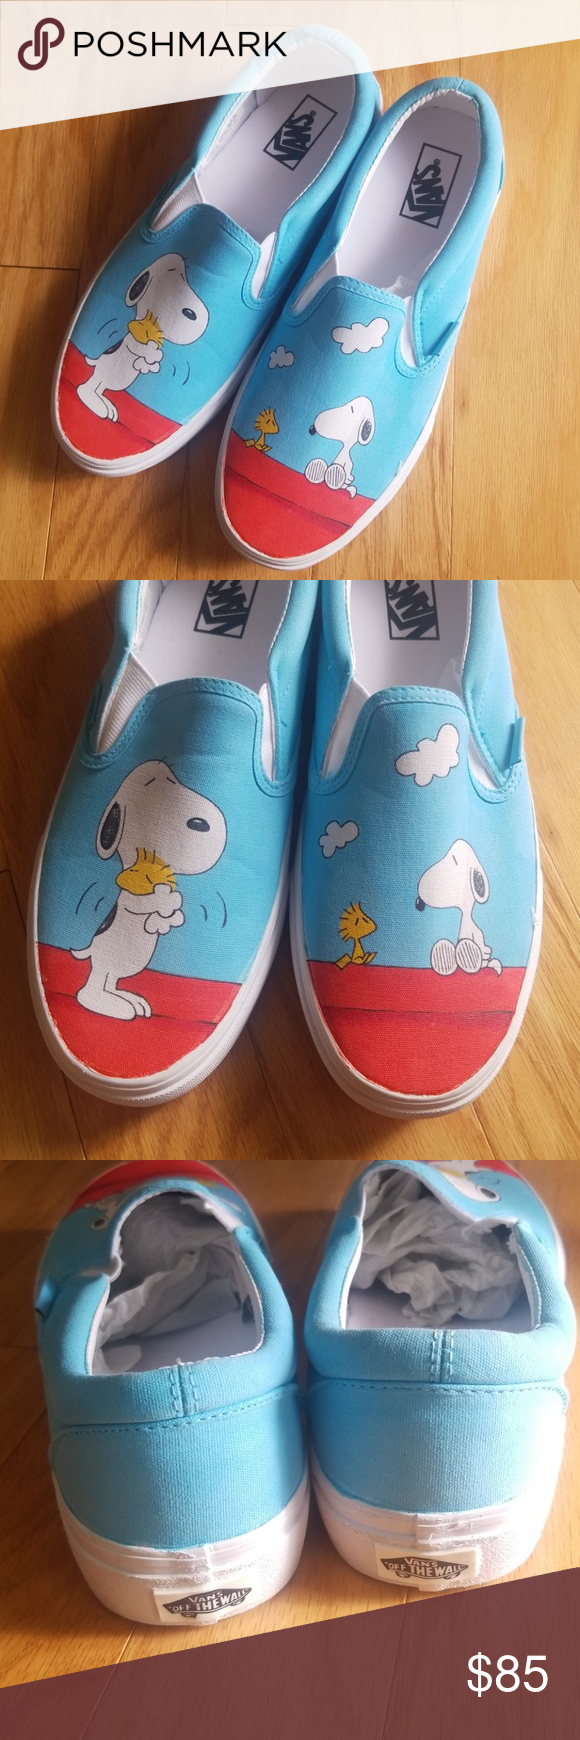 687d1a87585 NWT Vans x Peanuts Snoopy Sneakers Slip On Shoes Vans x Peanuts Rare Snoopy  and Woodstock sneaker. Mens size 9 and Womens size 10.5 Vans Shoes Sneakers